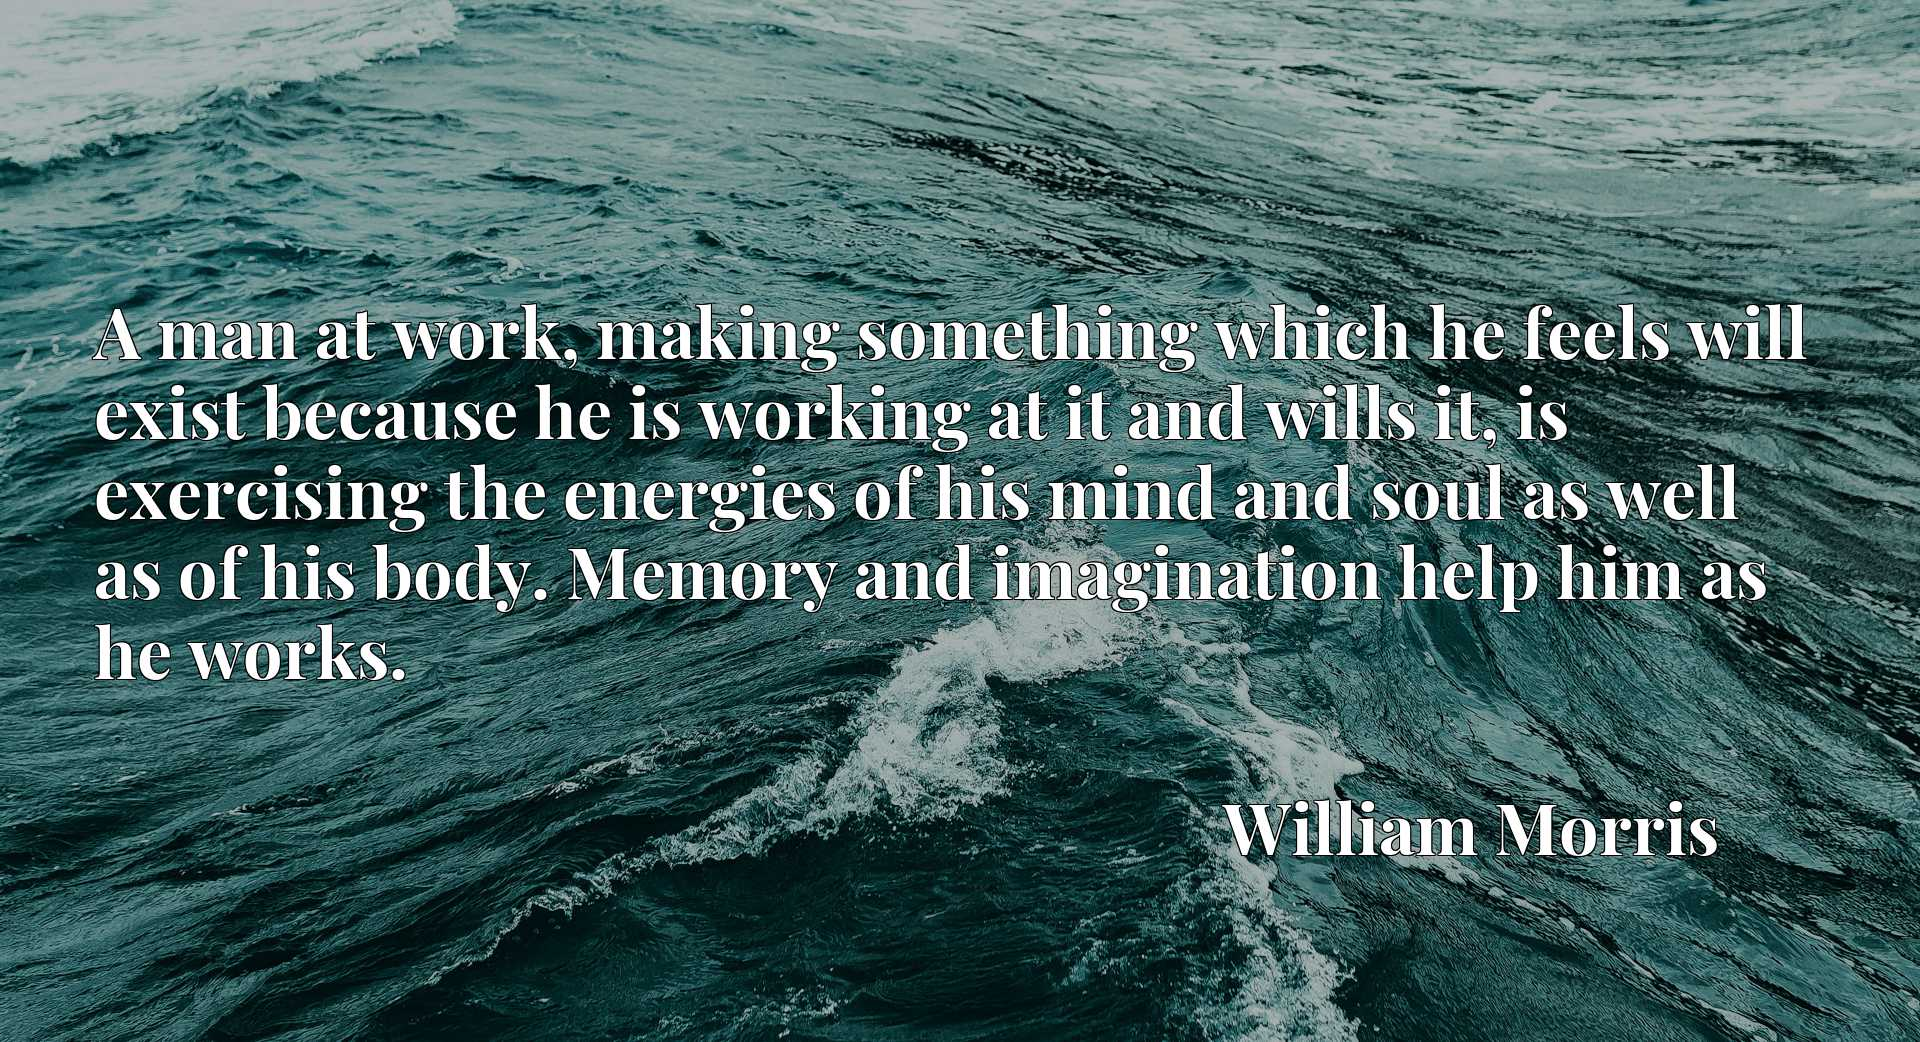 Quote Picture :A man at work, making something which he feels will exist because he is working at it and wills it, is exercising the energies of his mind and soul as well as of his body. Memory and imagination help him as he works.